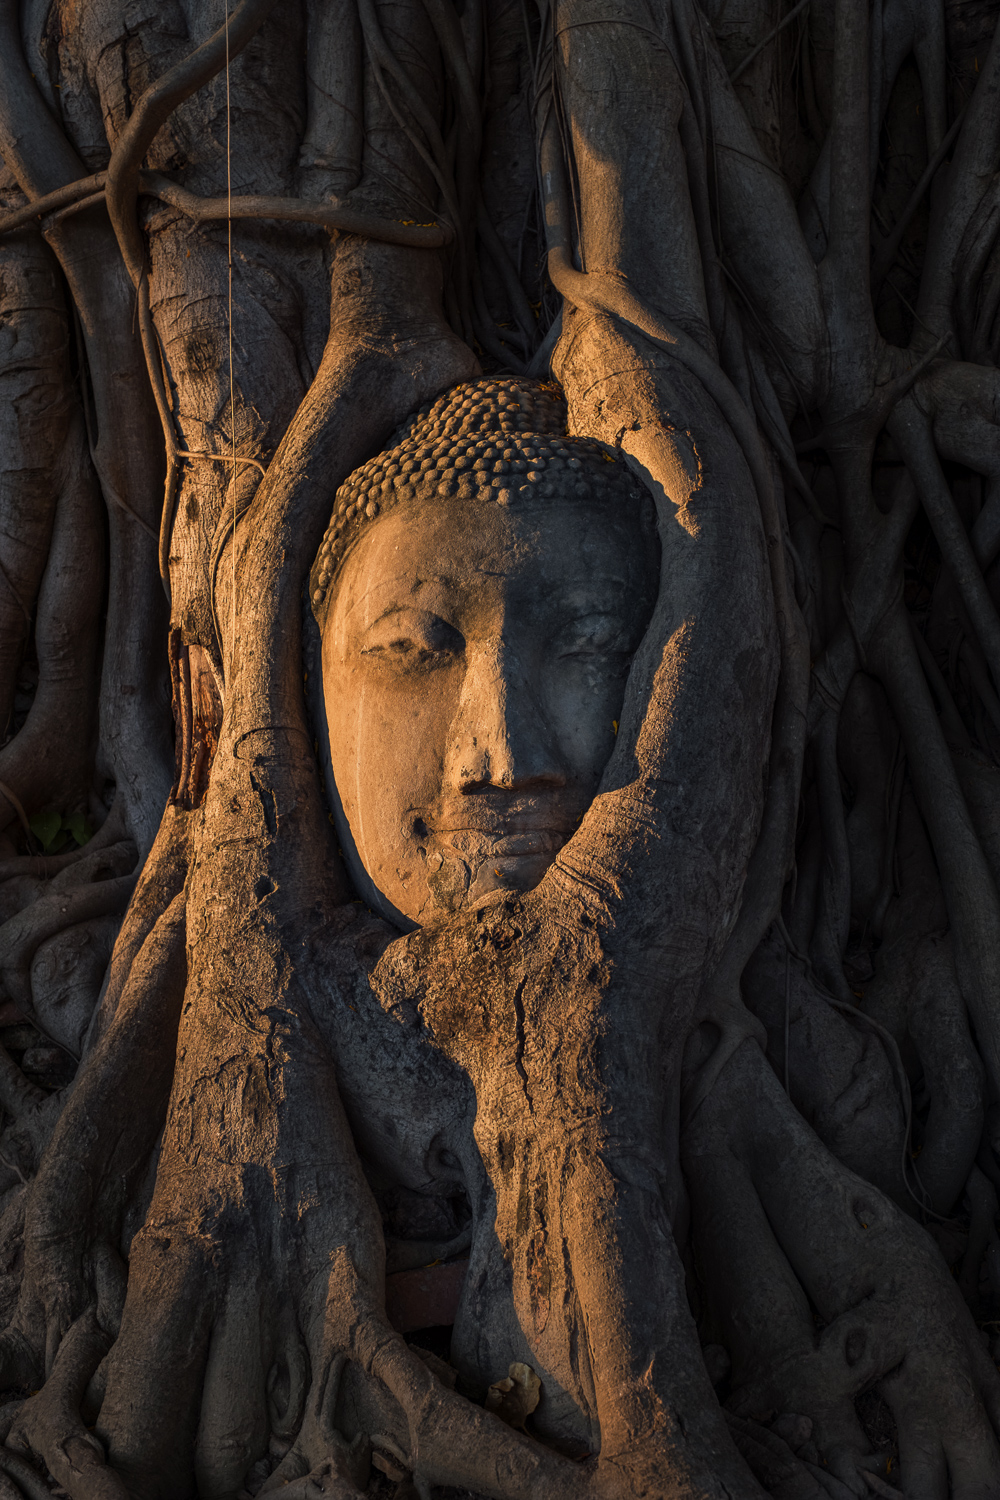 Head of a Buddha made out of stone entwined in the roots of a tree hit by the first sun in the morning. Wat Mahathat in Ayutthaya, Thailand